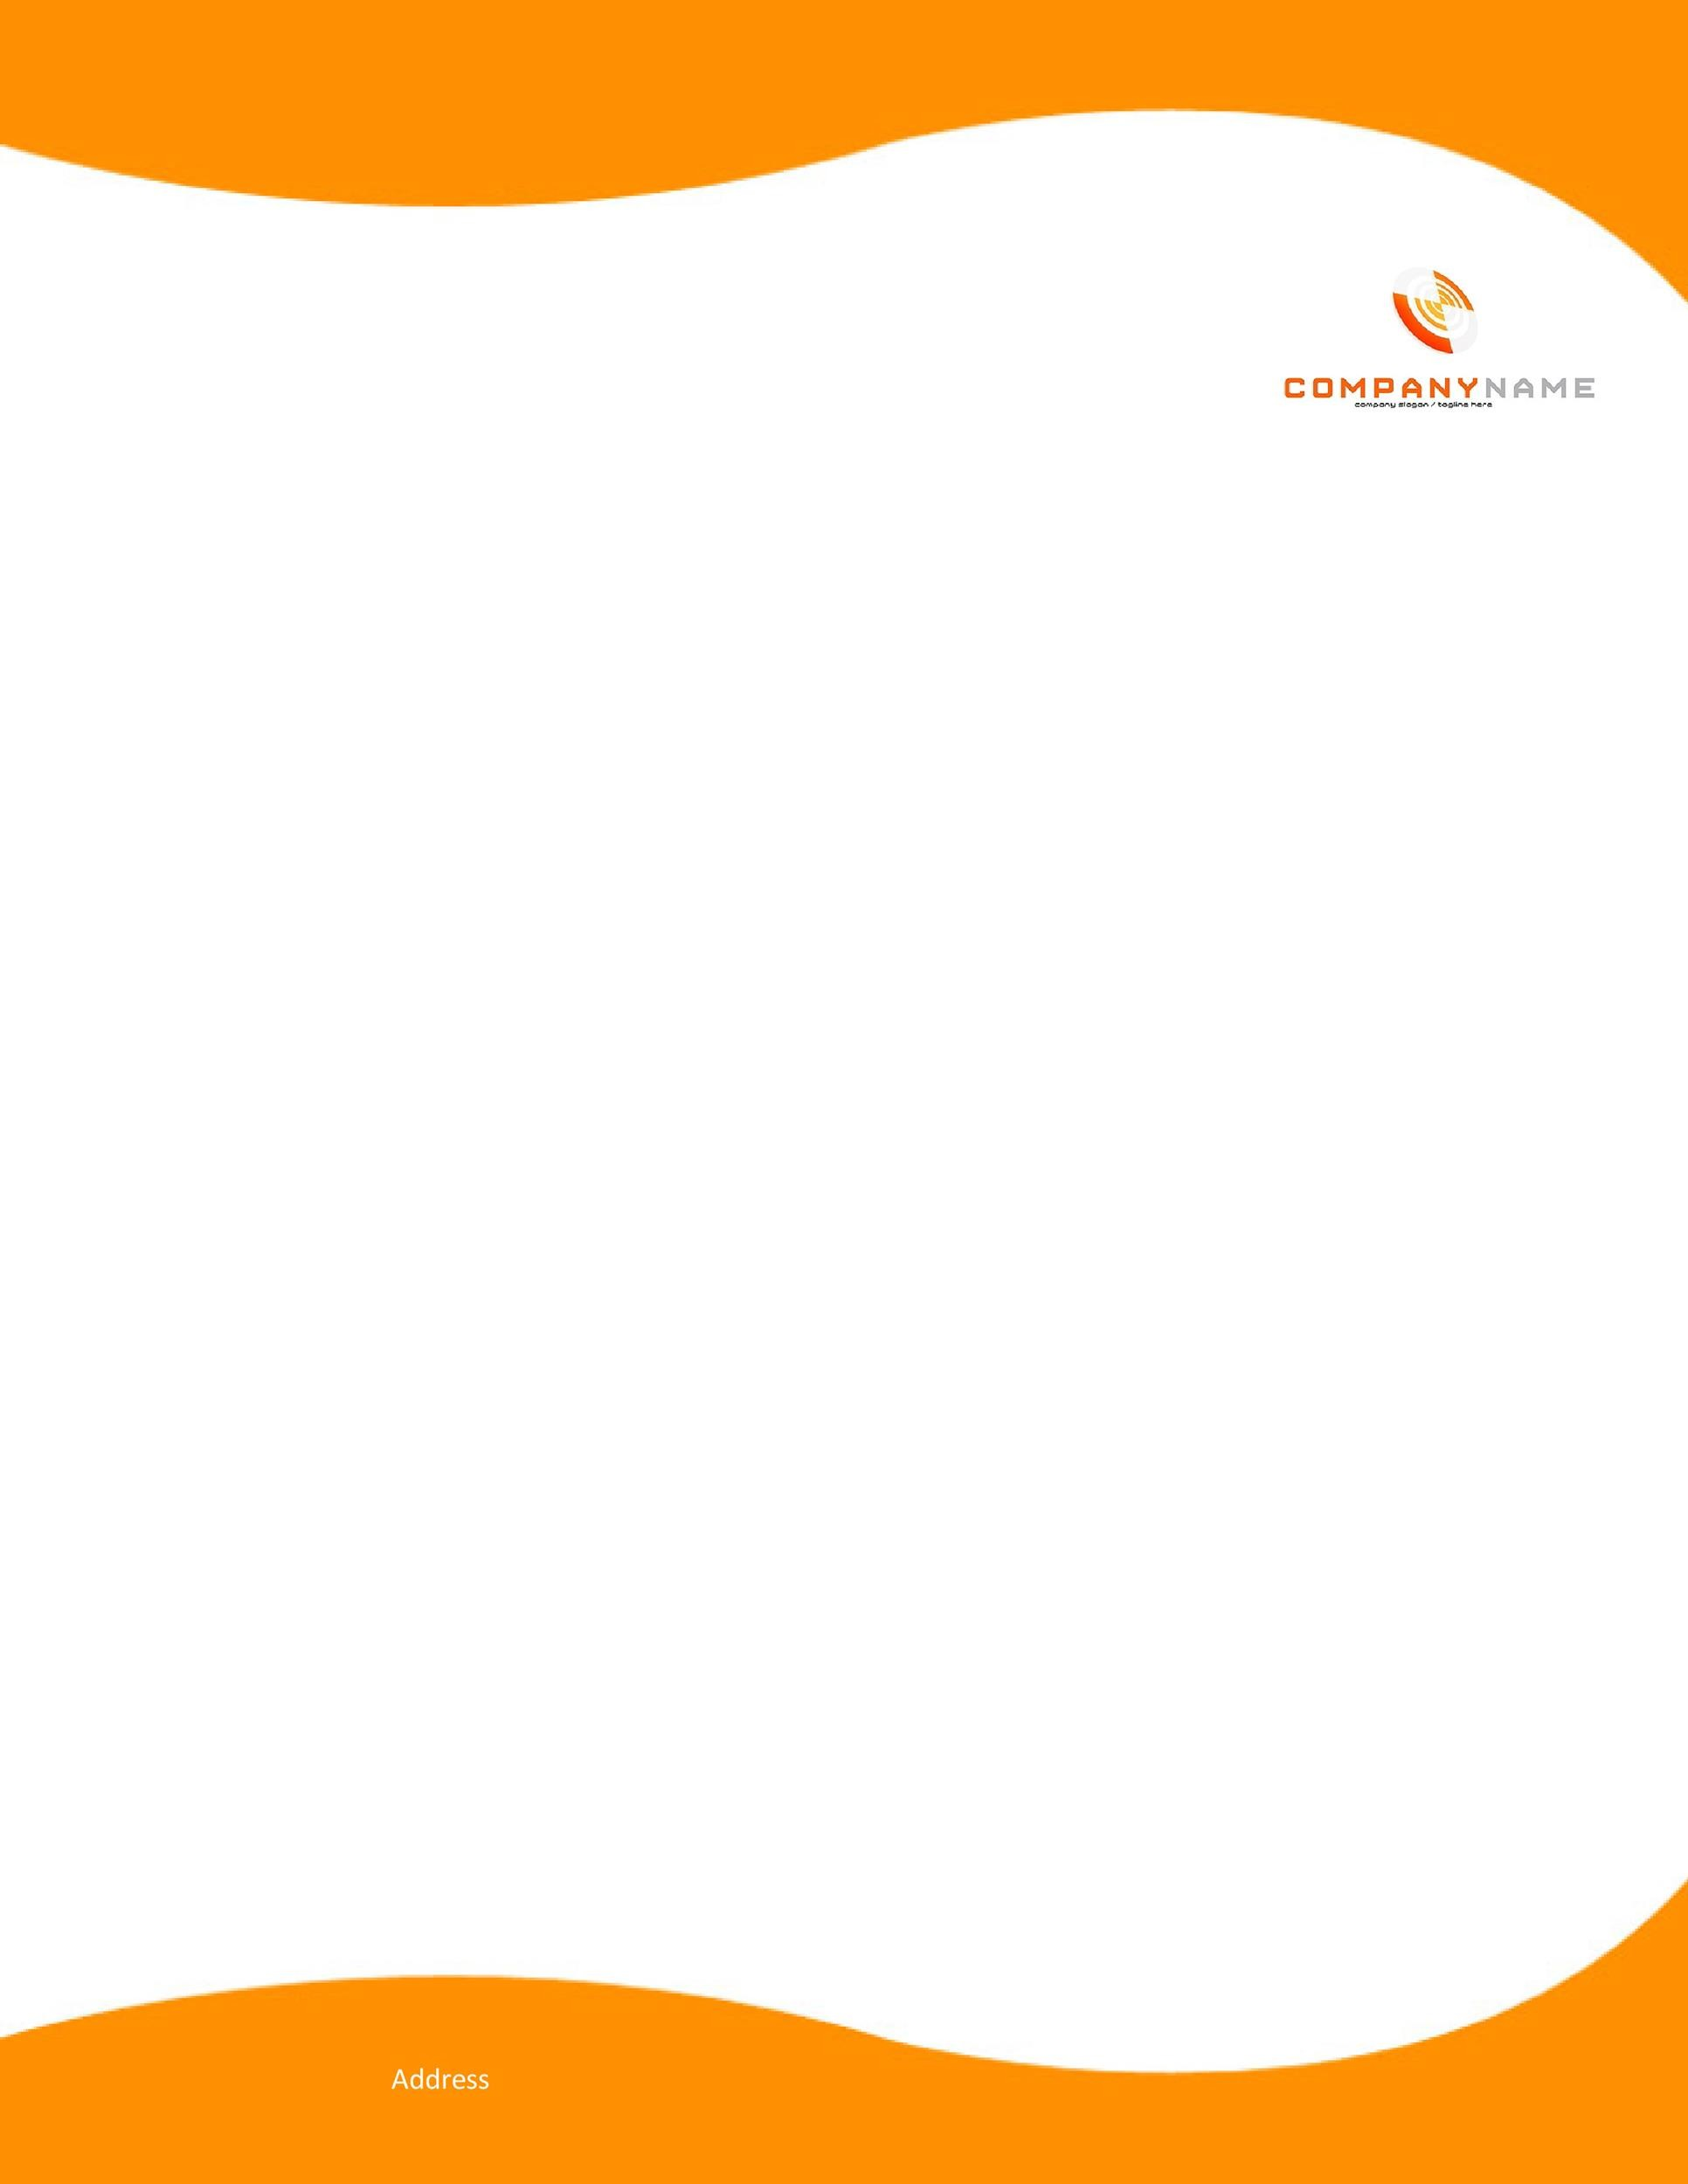 Captivating Printable Letterhead Template Word 01 Inside Free Letterhead Samples